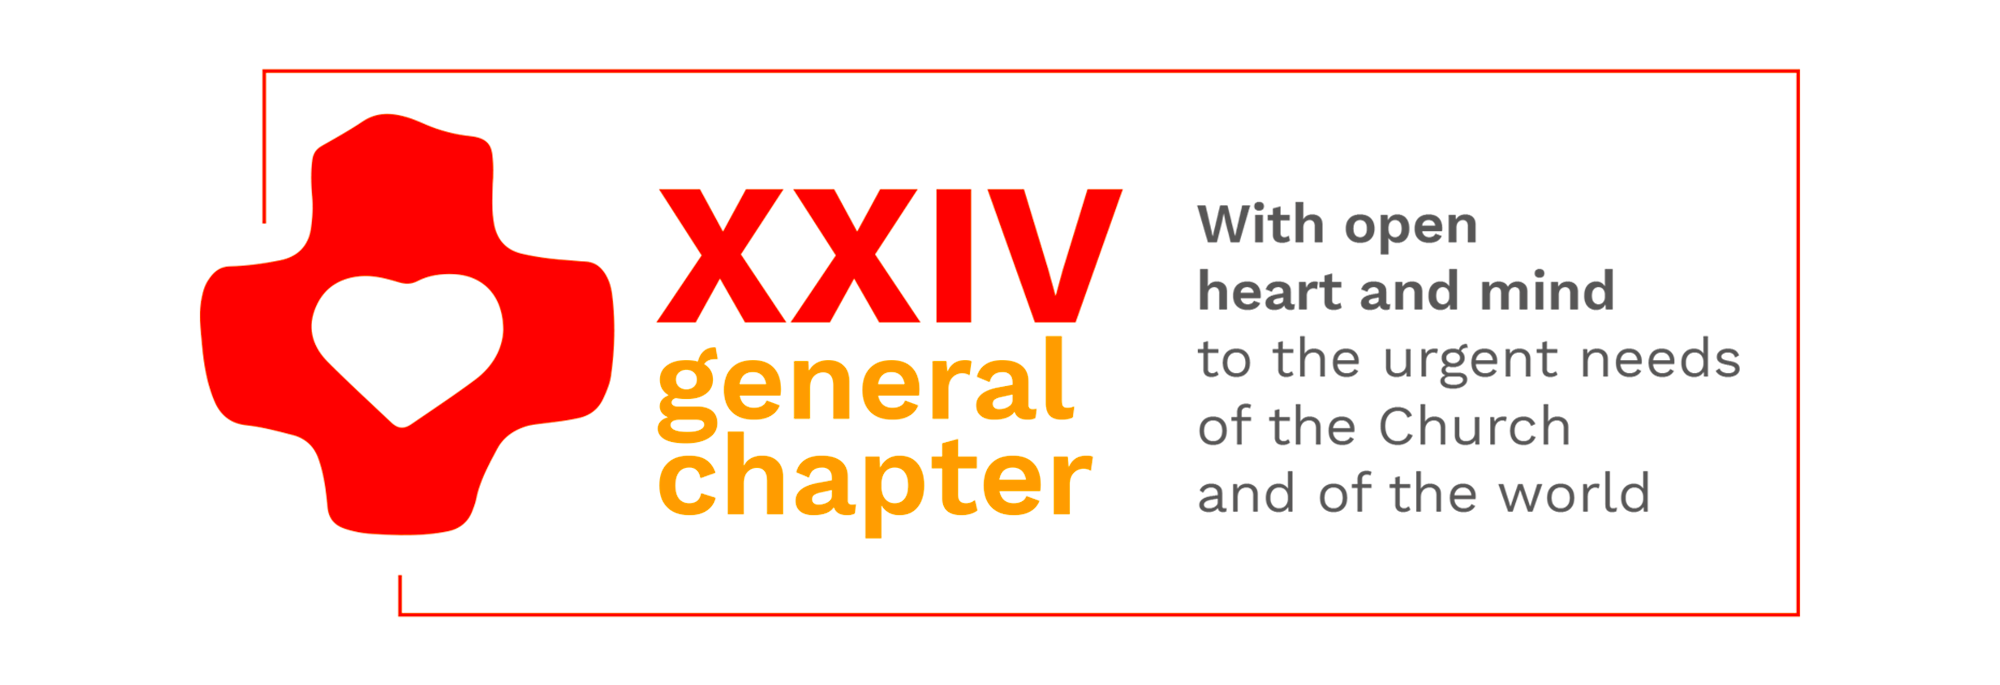 The logo of the XXIV General Chapter